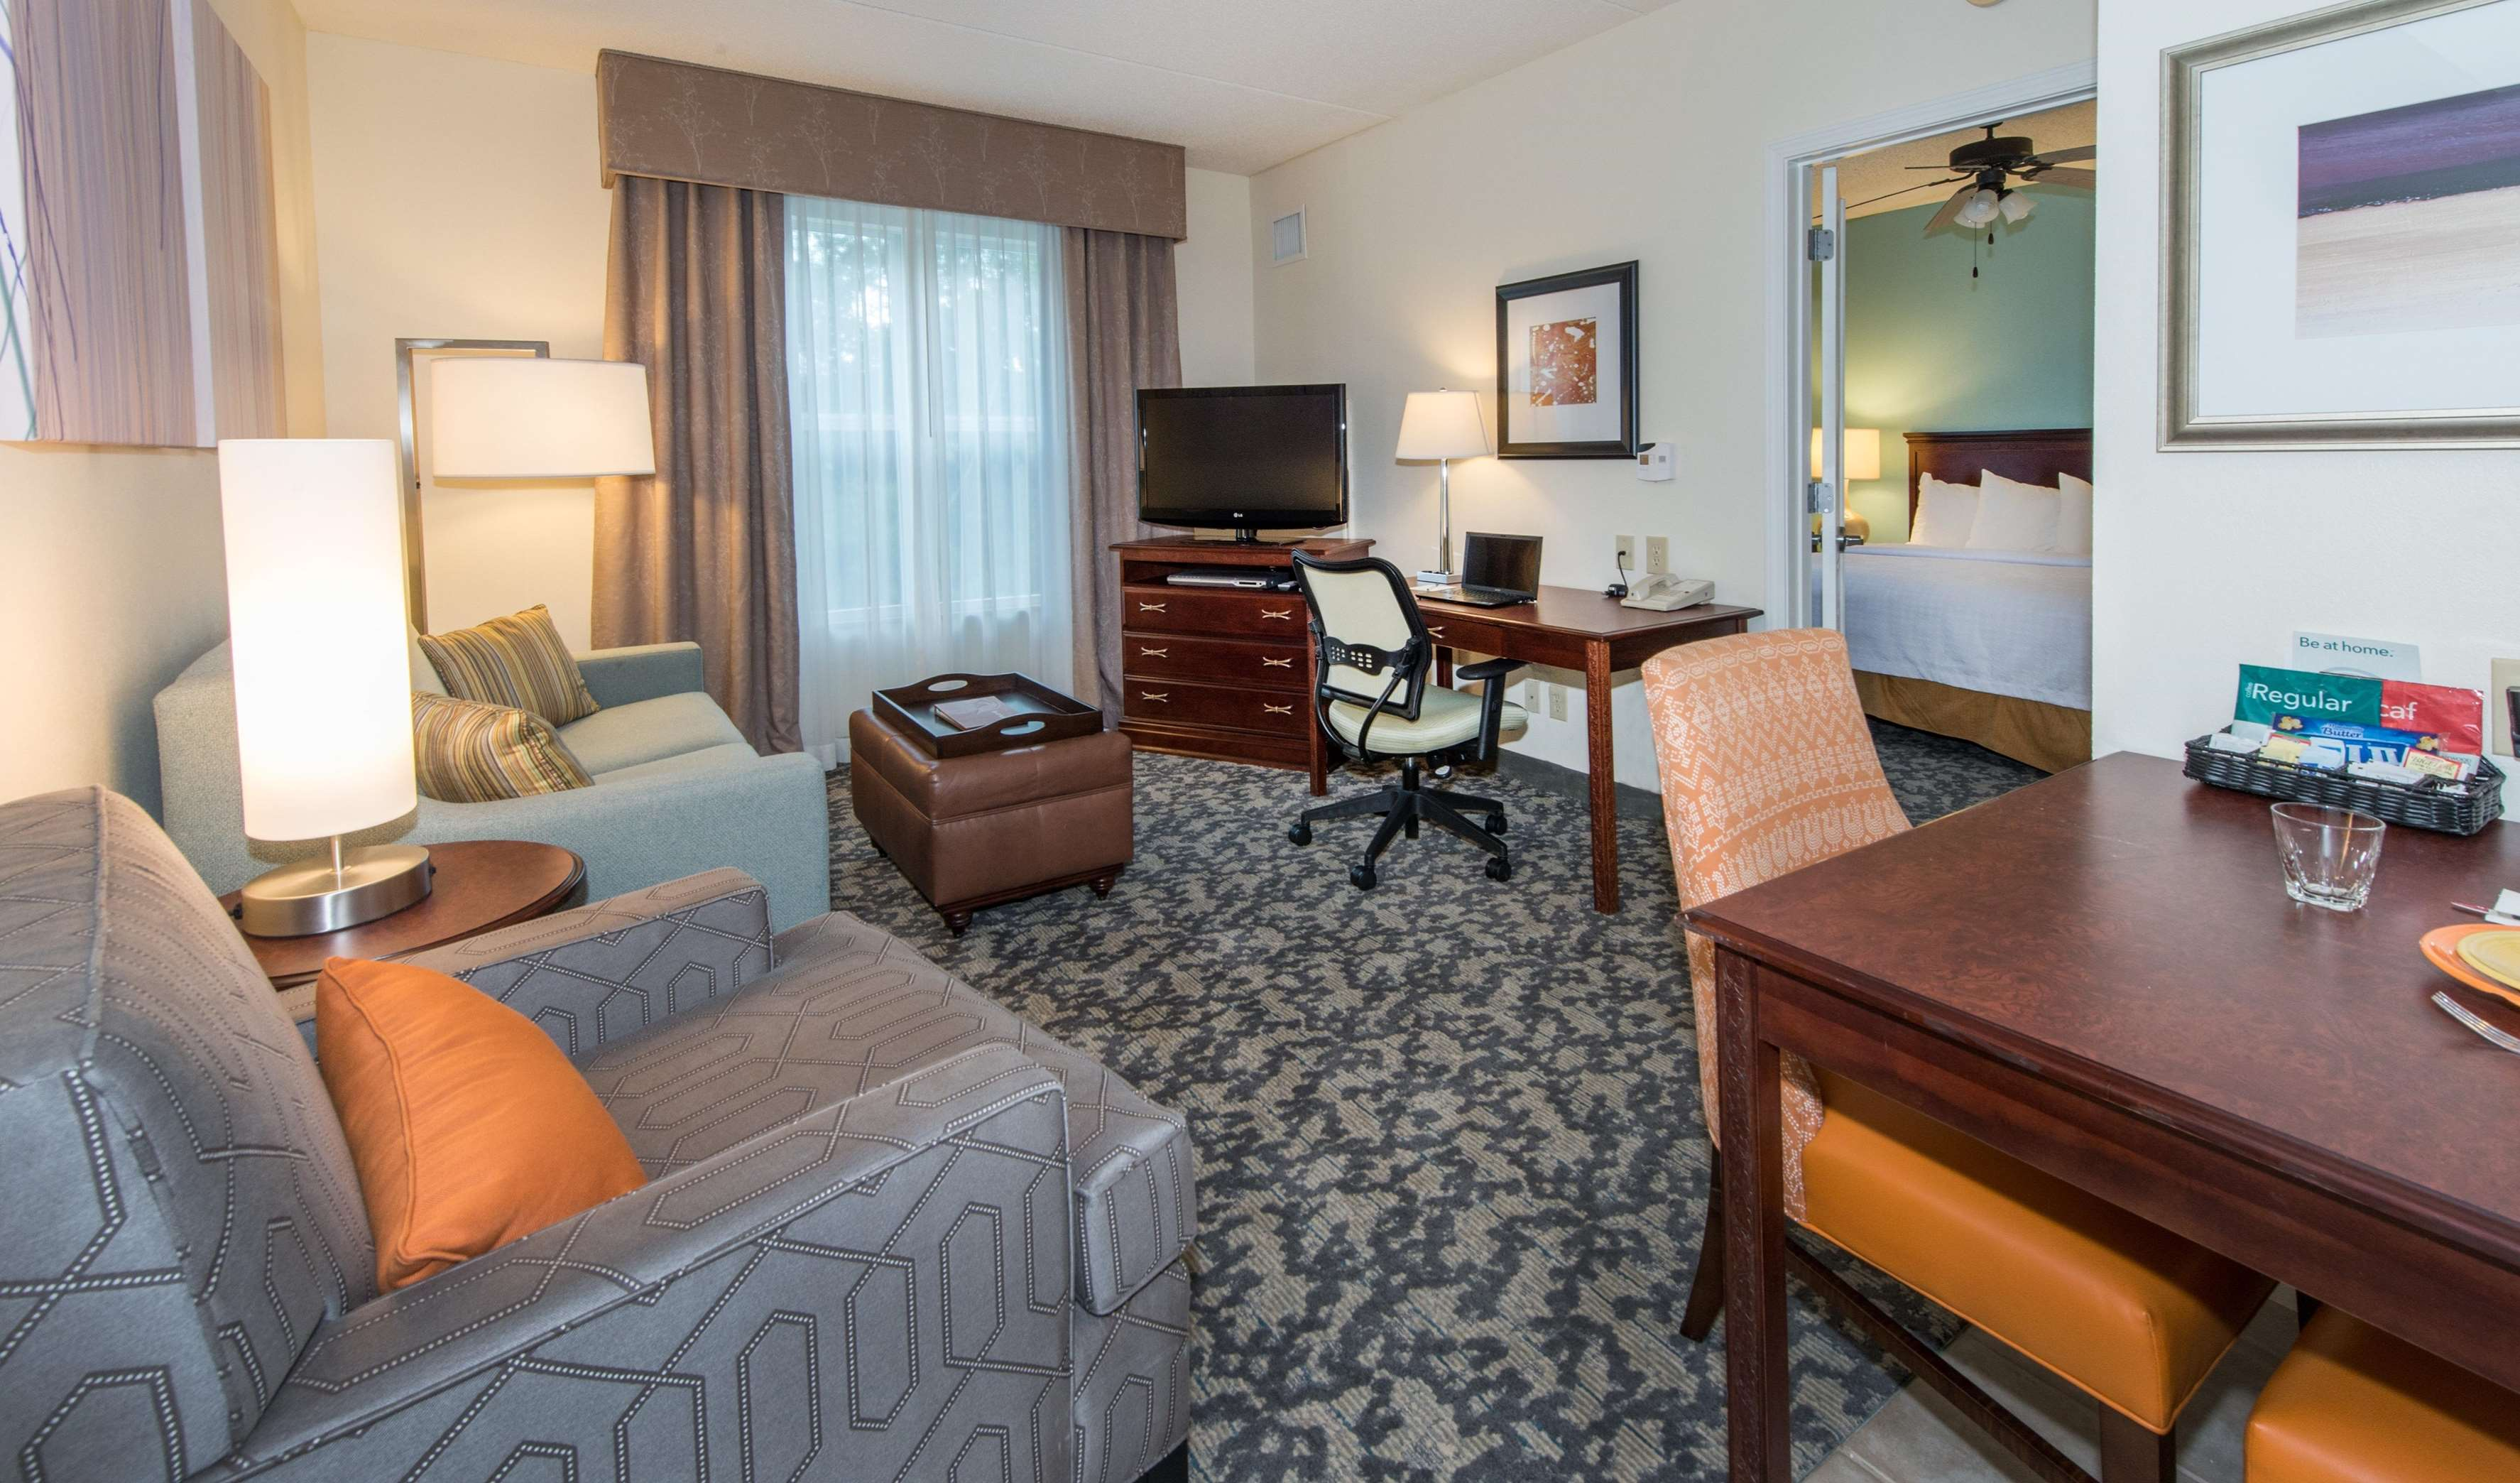 Homewood Suites by Hilton Montgomery image 23